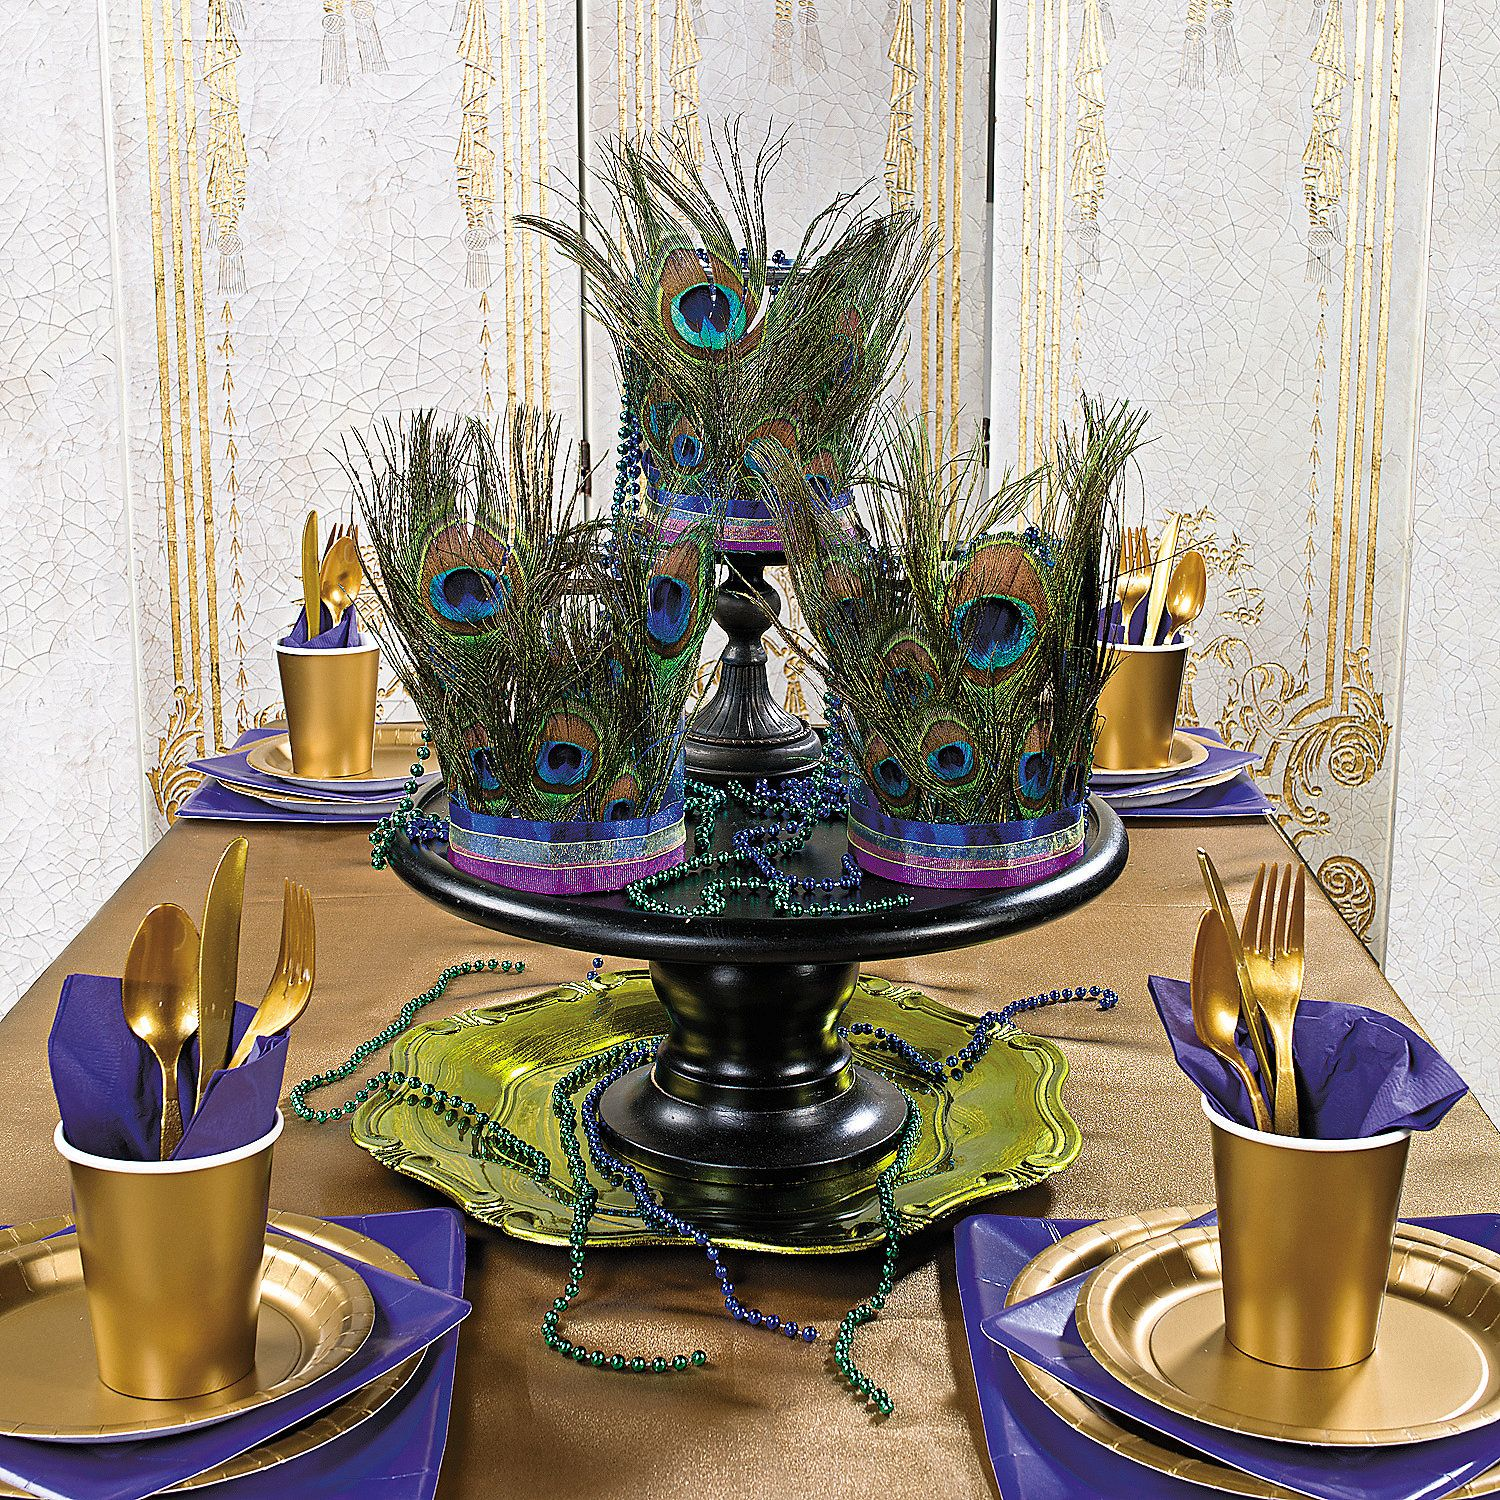 Party Decorations Table Centerpieces: How To- Peacock+Feather+Centerpieces+-+OrientalTrading.com